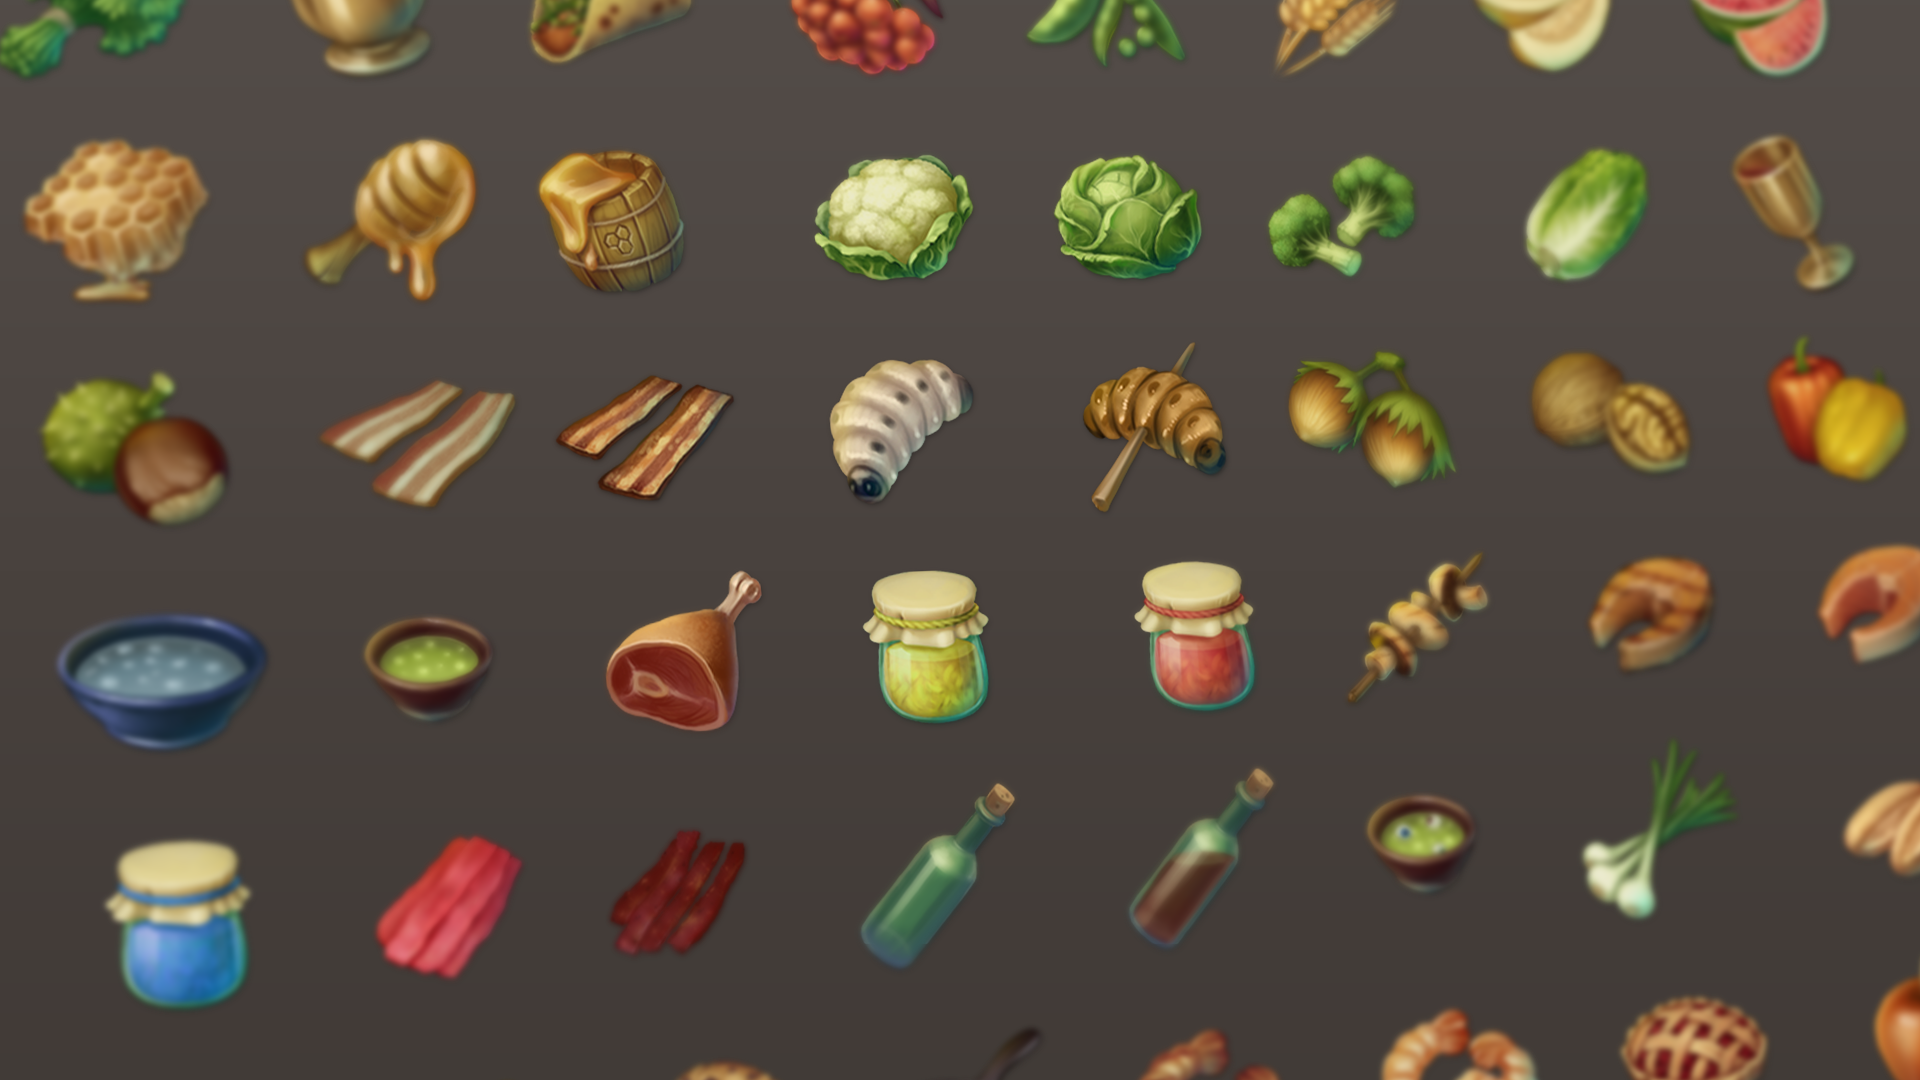 Fantasy RPG Food Icons by Leonid Deburger in 2D Assets - UE4